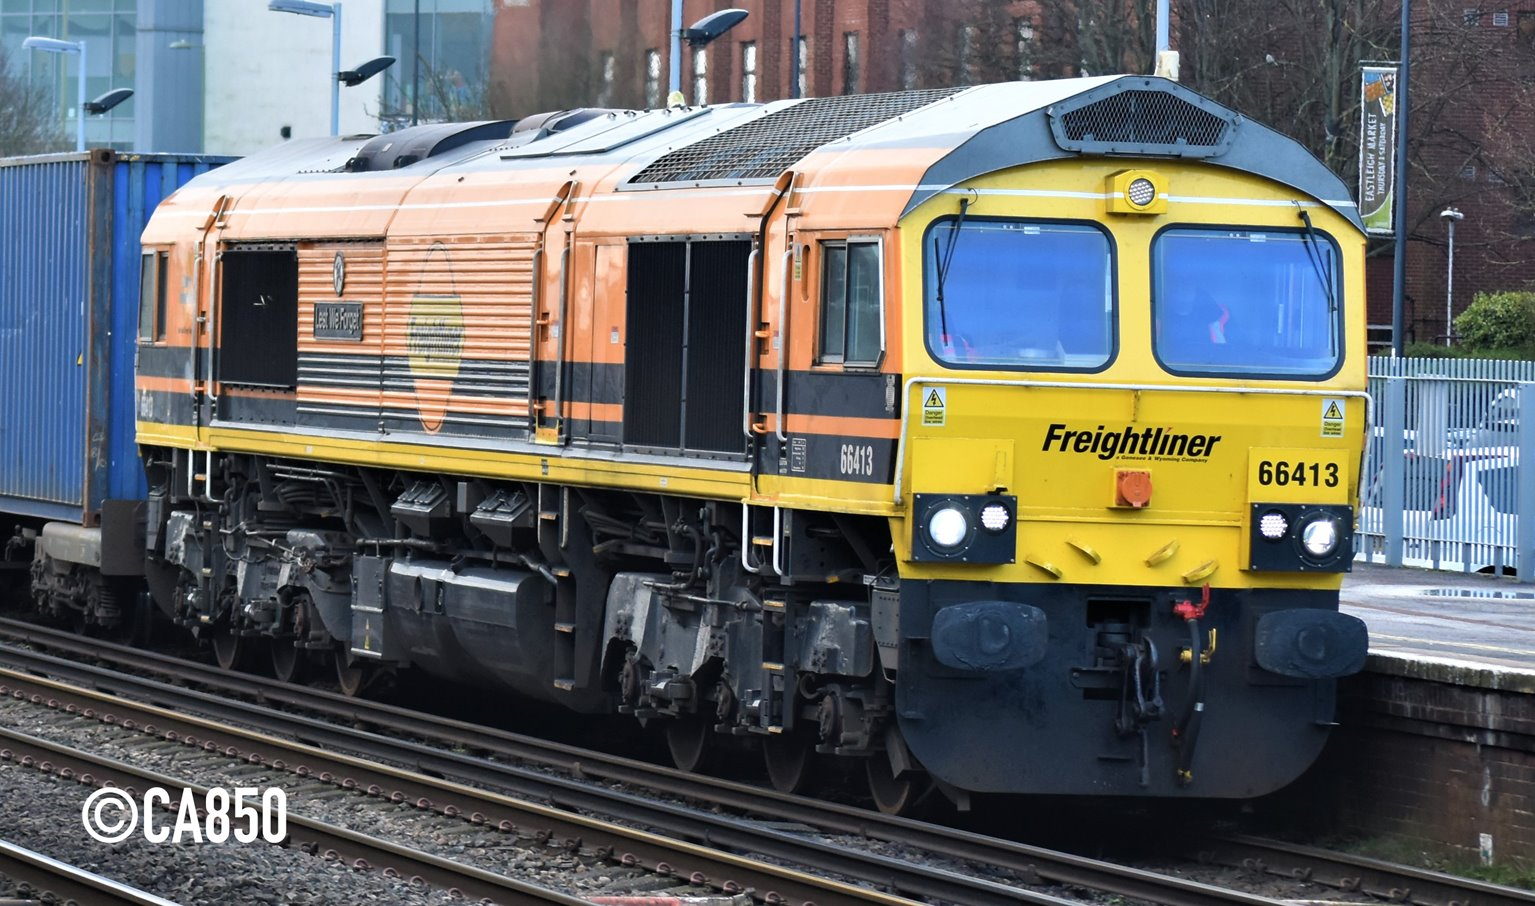 Class 66 66413 'Lest We Forget' Freightliner Orange & Black Diesel Locomotive DCC Fitted